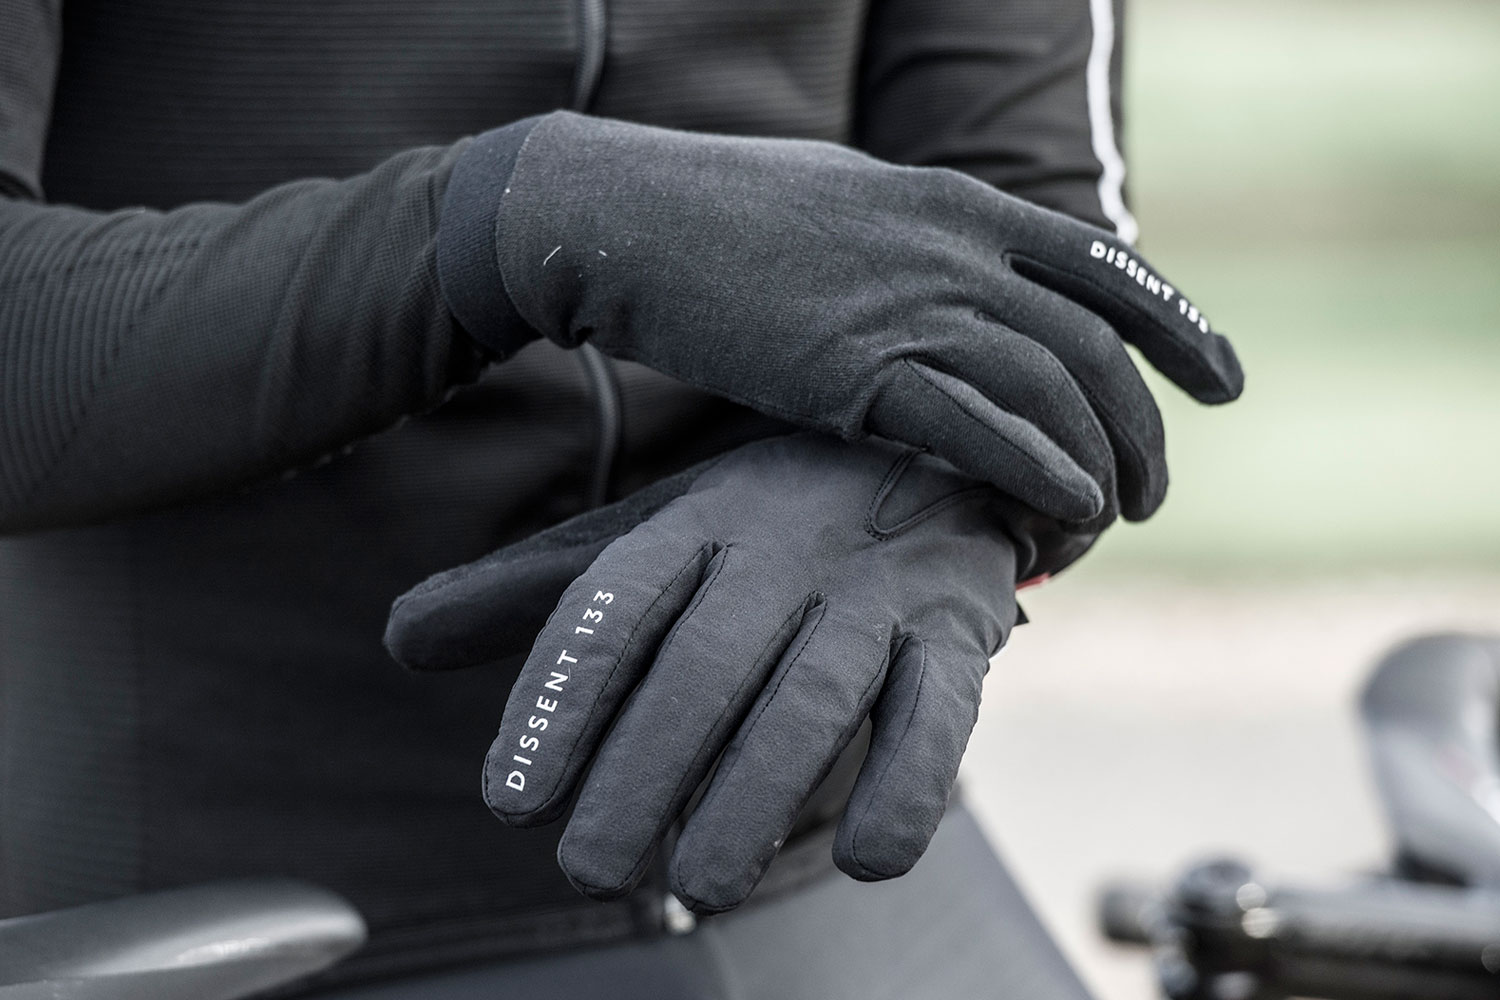 Dissent 133 by TheRiderFirm layered winter biking gloves wet cold cycling glove system layers